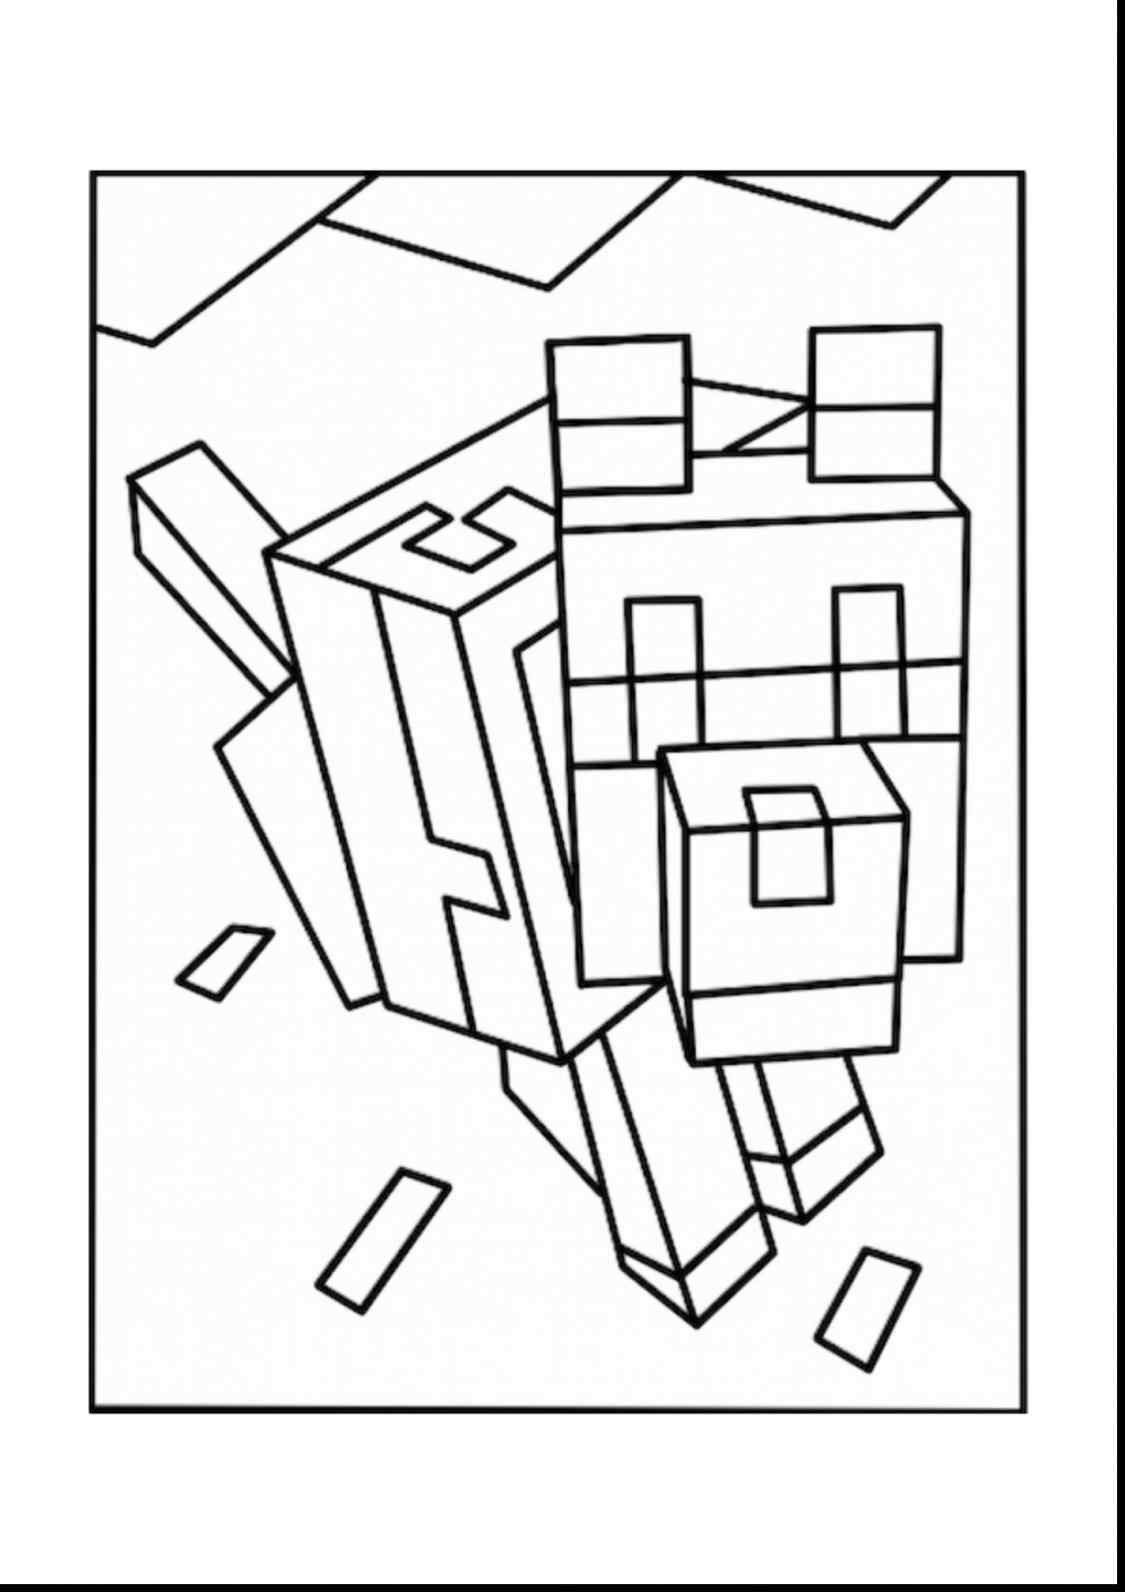 The diamond minecart coloring pages at getdrawings com free for